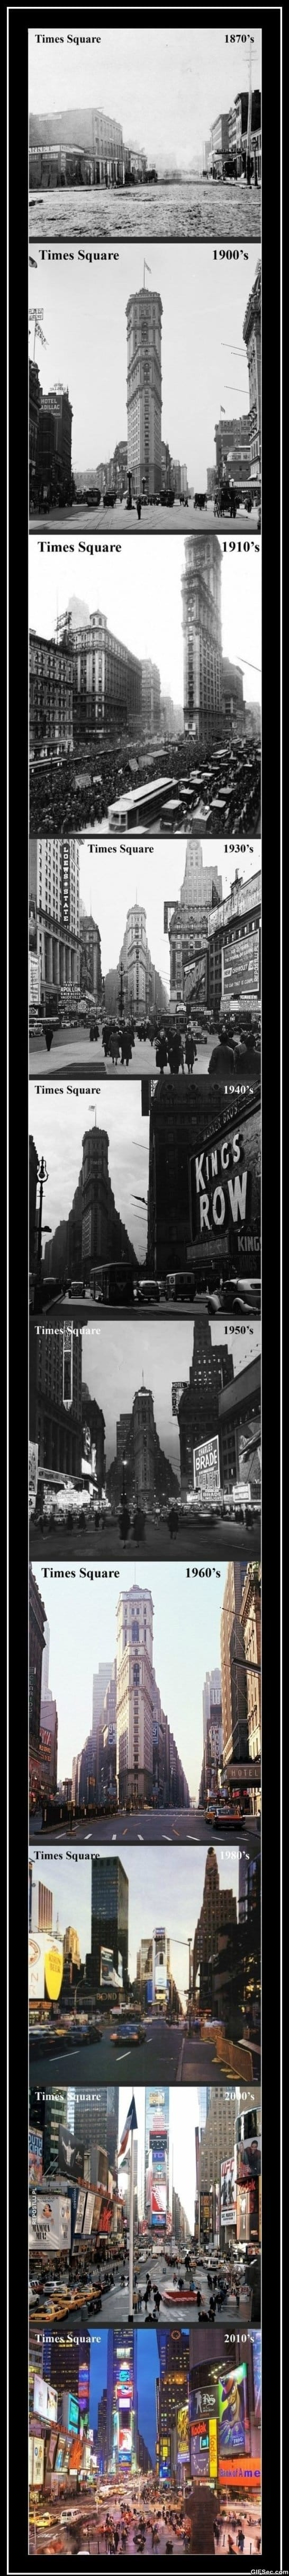 times-square-over-the-years-meme